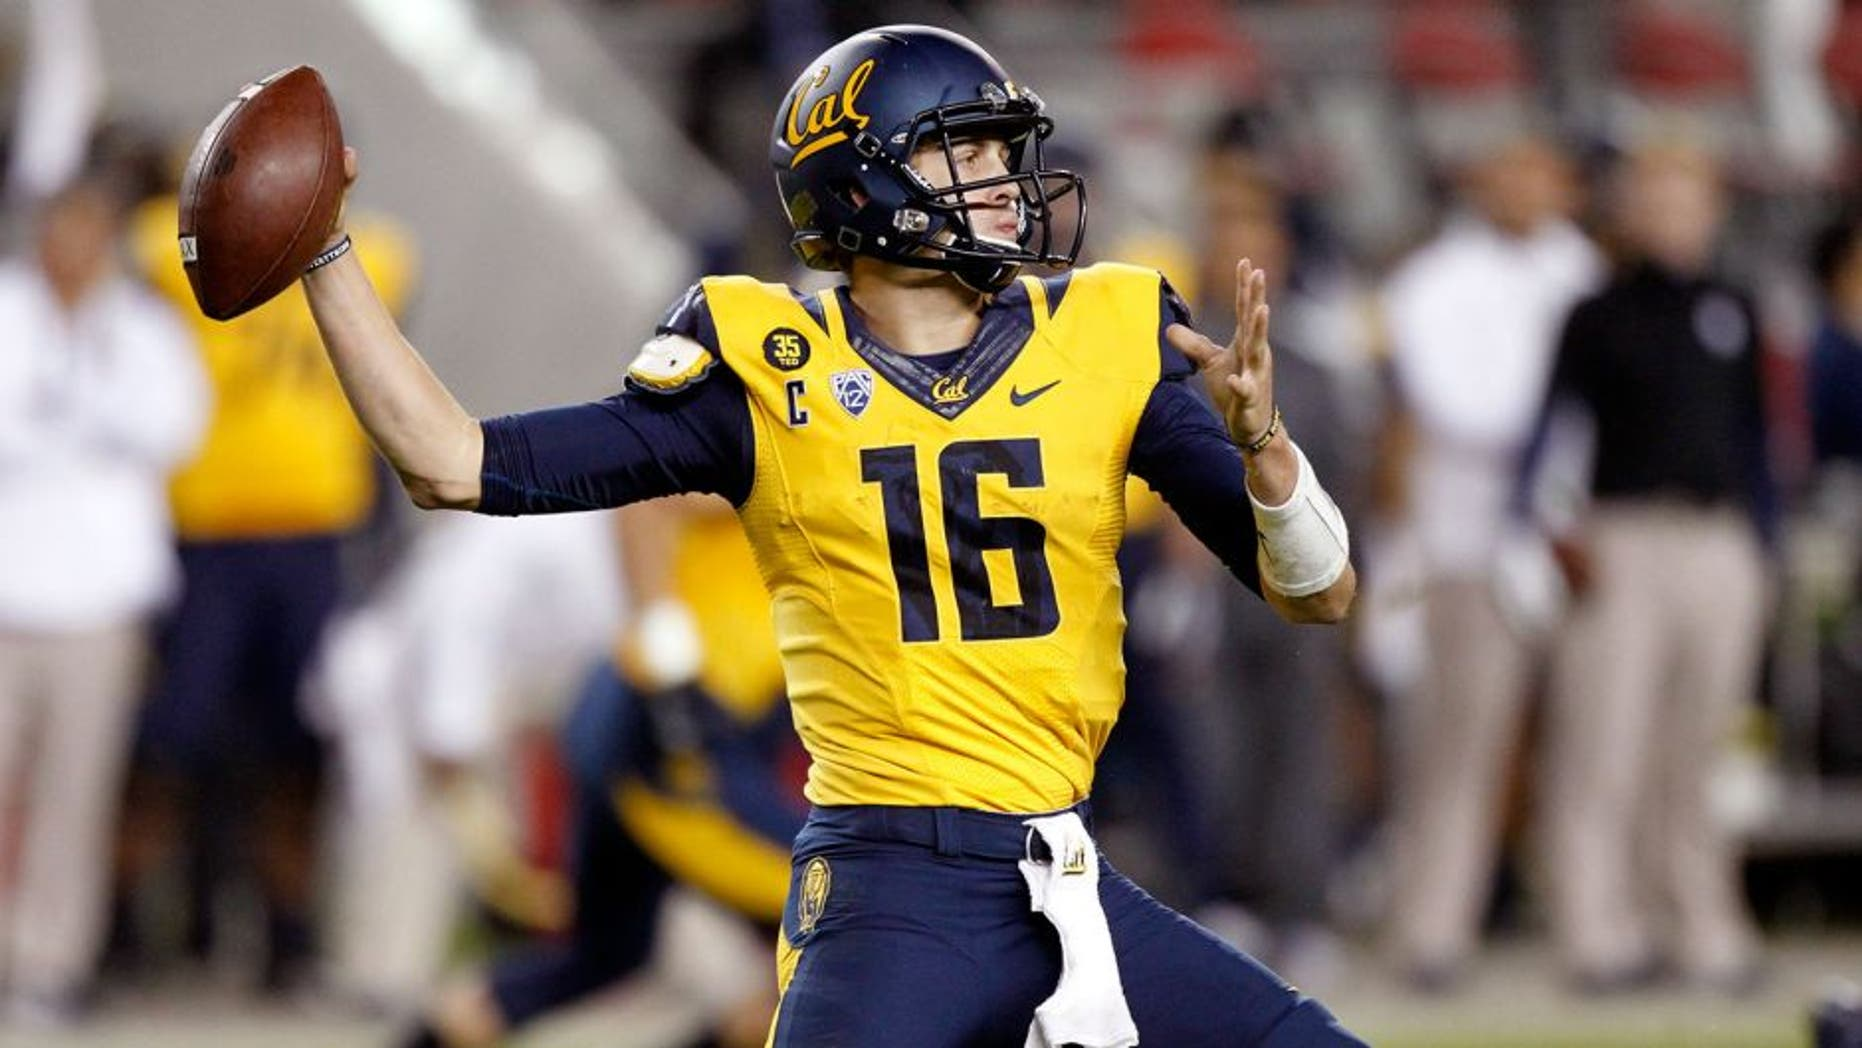 Oct 24, 2014; Santa Clara, CA, USA; California Golden Bears quarterback Jared Goff (16) throws the ball against the Oregon Ducks in the fourth quarter at Levi's Stadium. The Ducks won 59-41. Mandatory Credit: Cary Edmondson-USA TODAY Sports